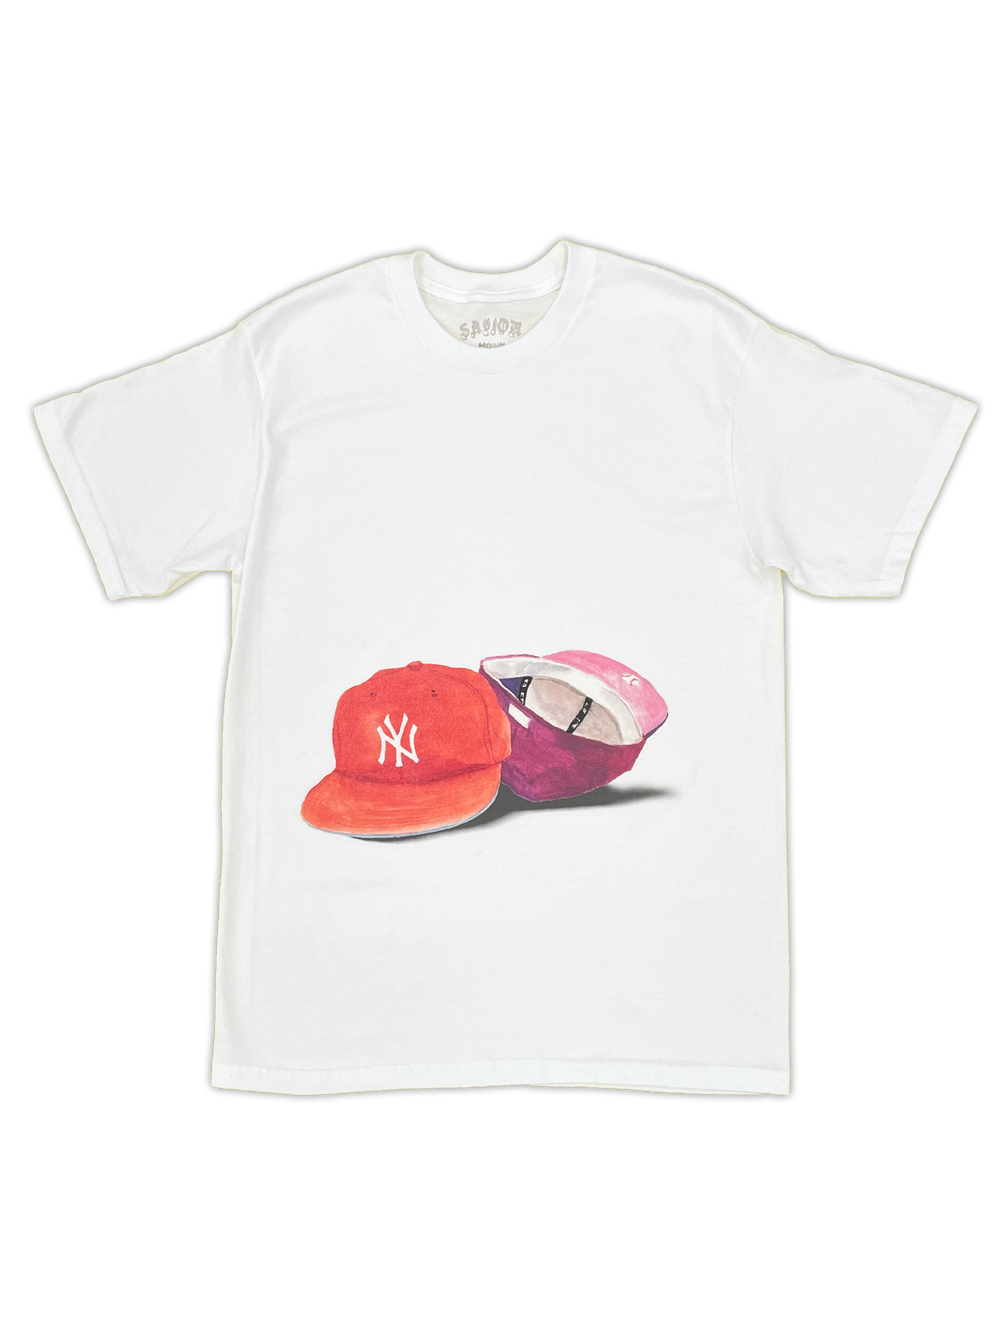 Image of HC TOPPS Tee By Jacob Rochester